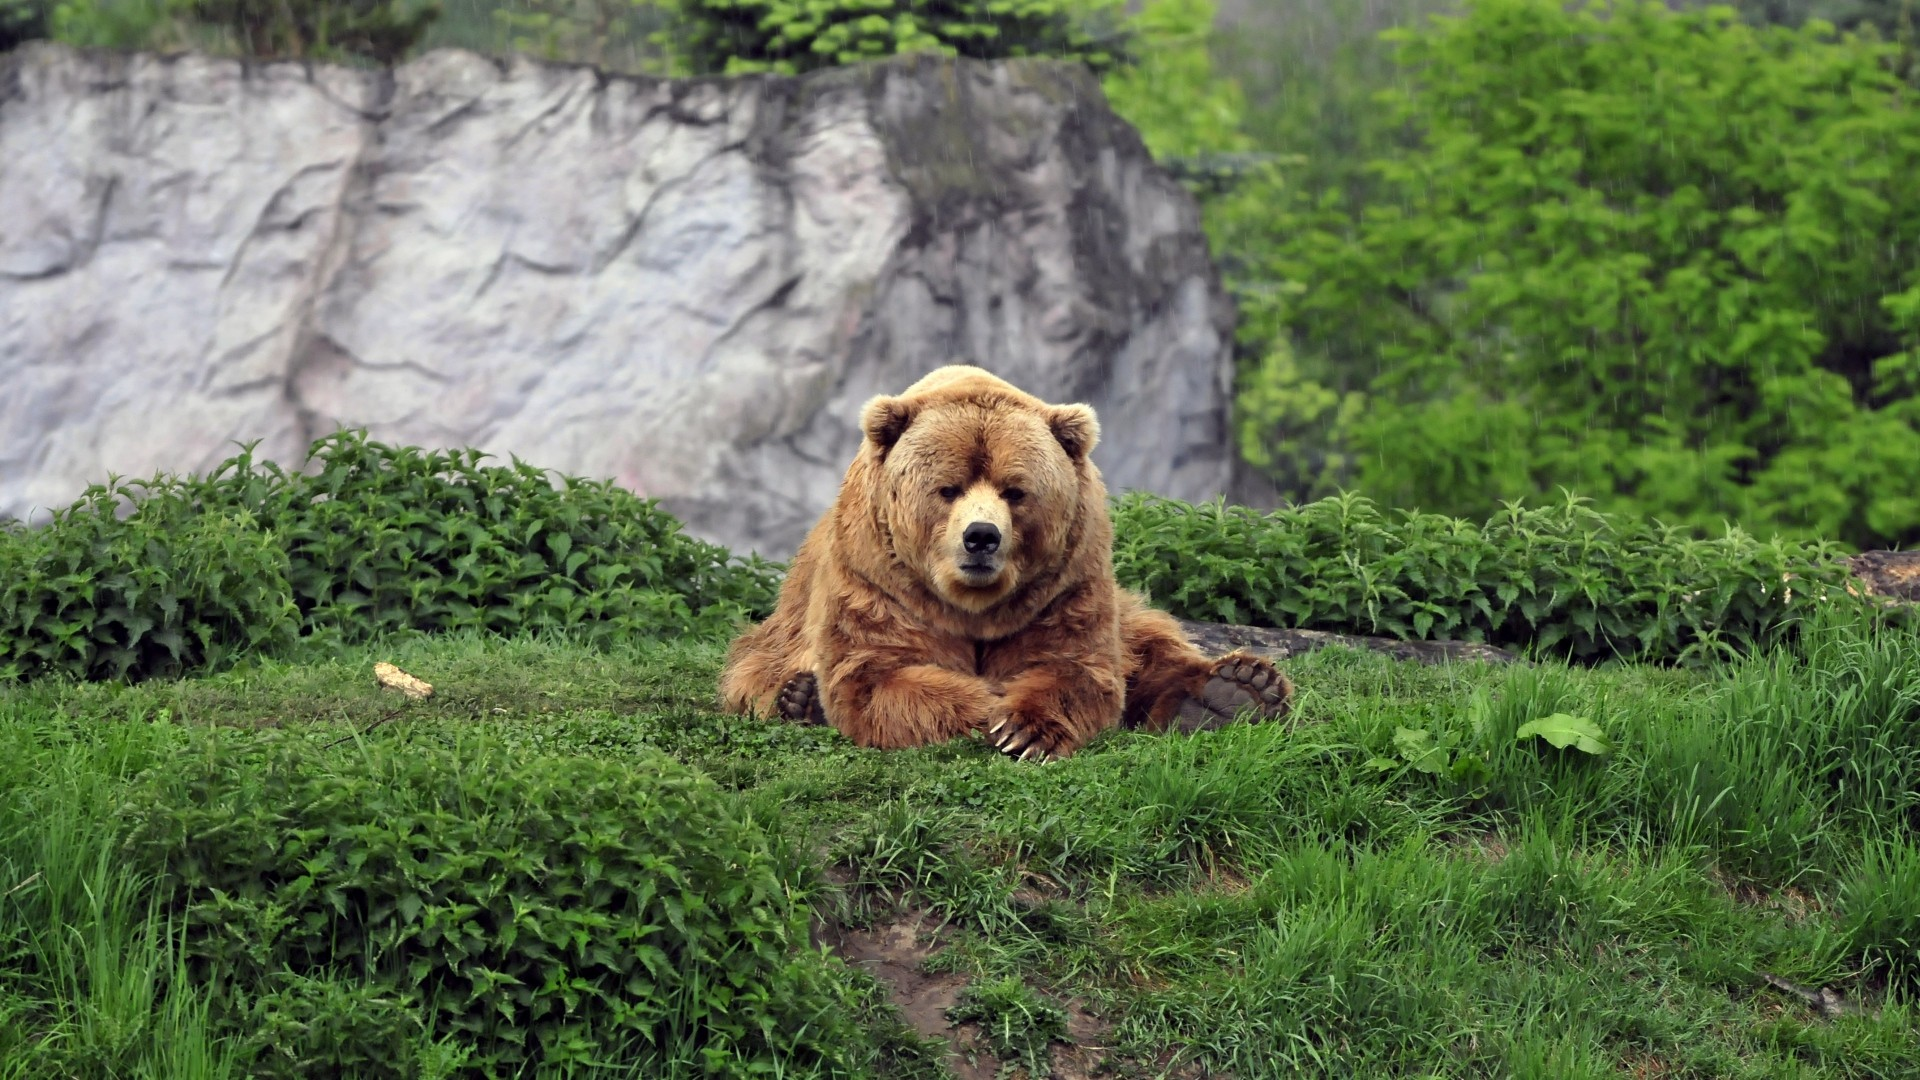 Bears Wallpapers 1366×768 Pictures Of Bears Wallpapers (57 Wallpapers) |  Adorable Wallpapers | Desktop | Pinterest | Bear wallpaper and Wallpaper